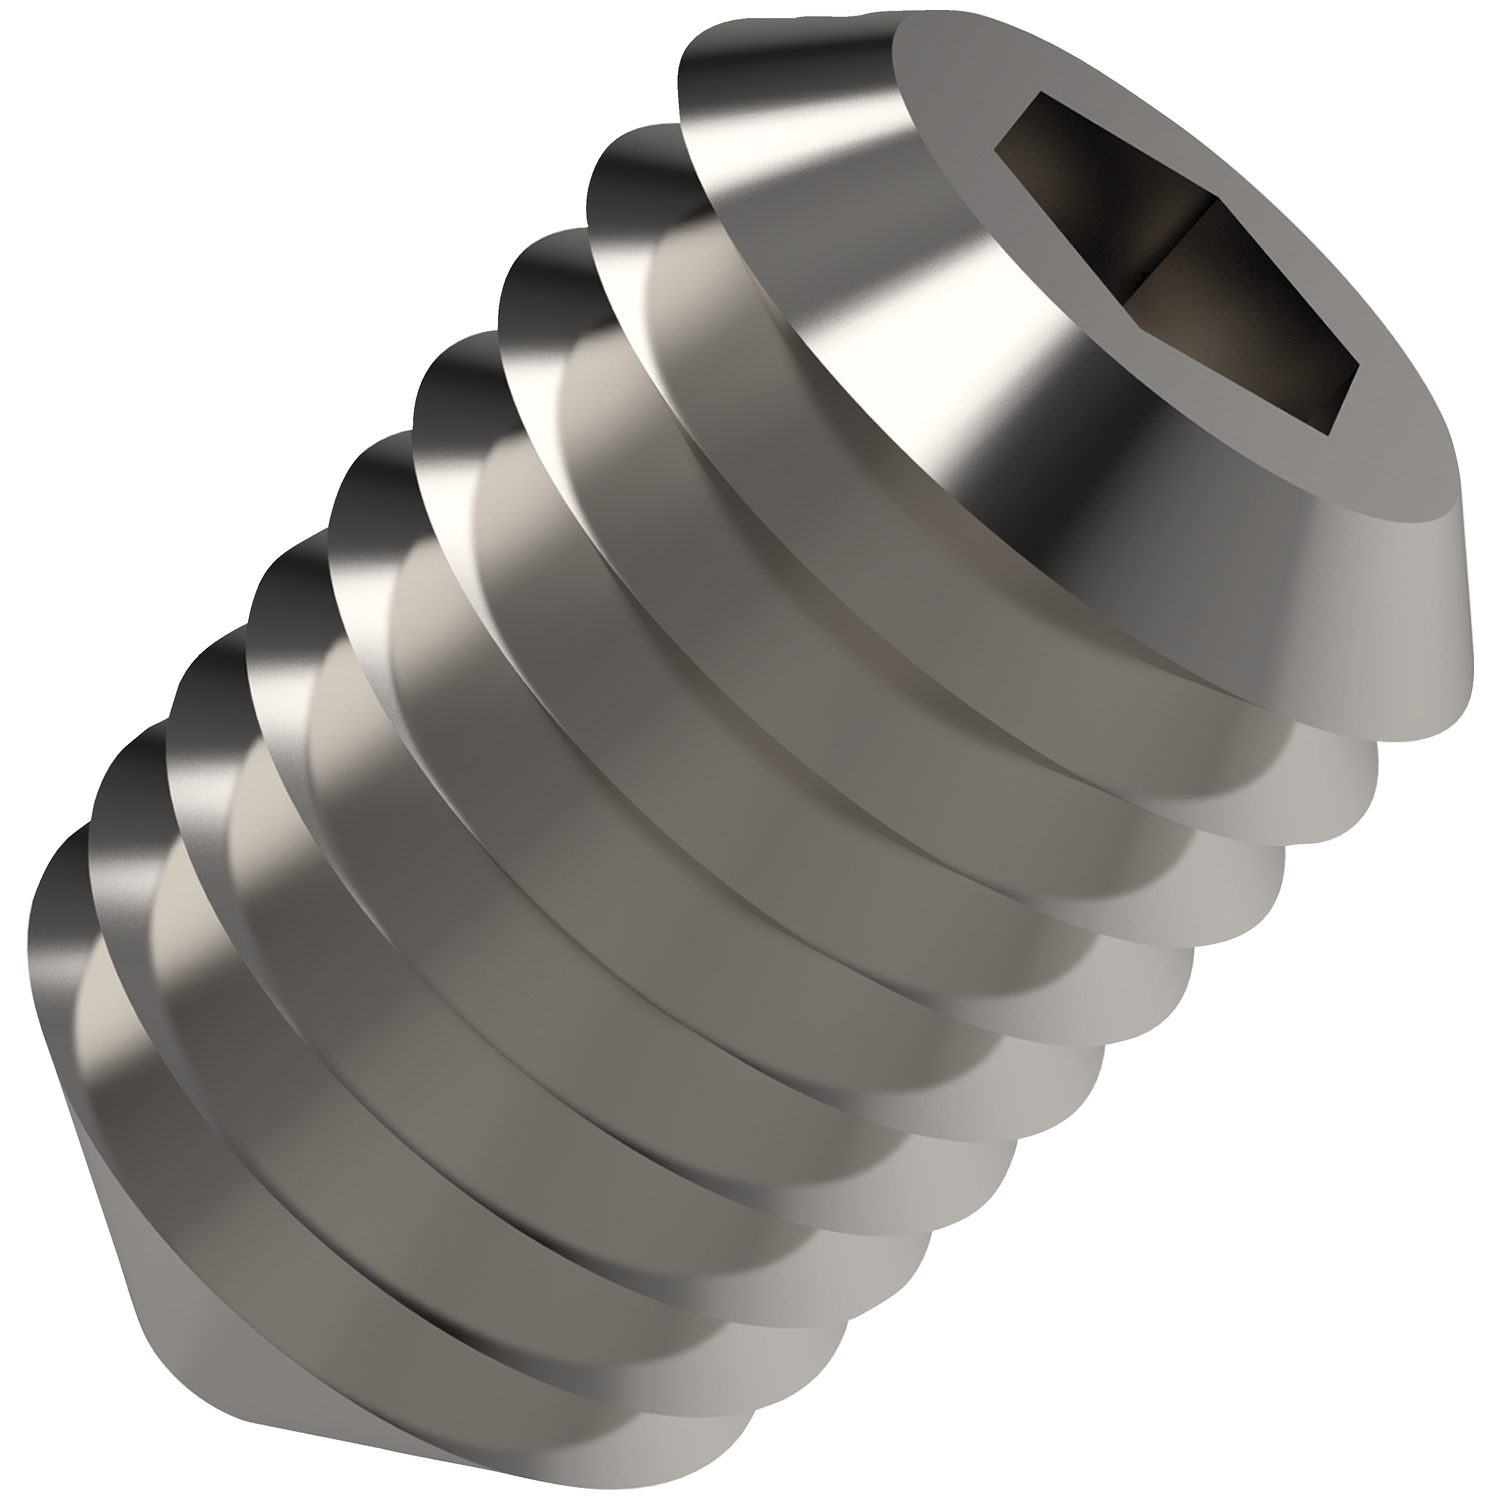 P0273 - Socket Set Screws Cone Point